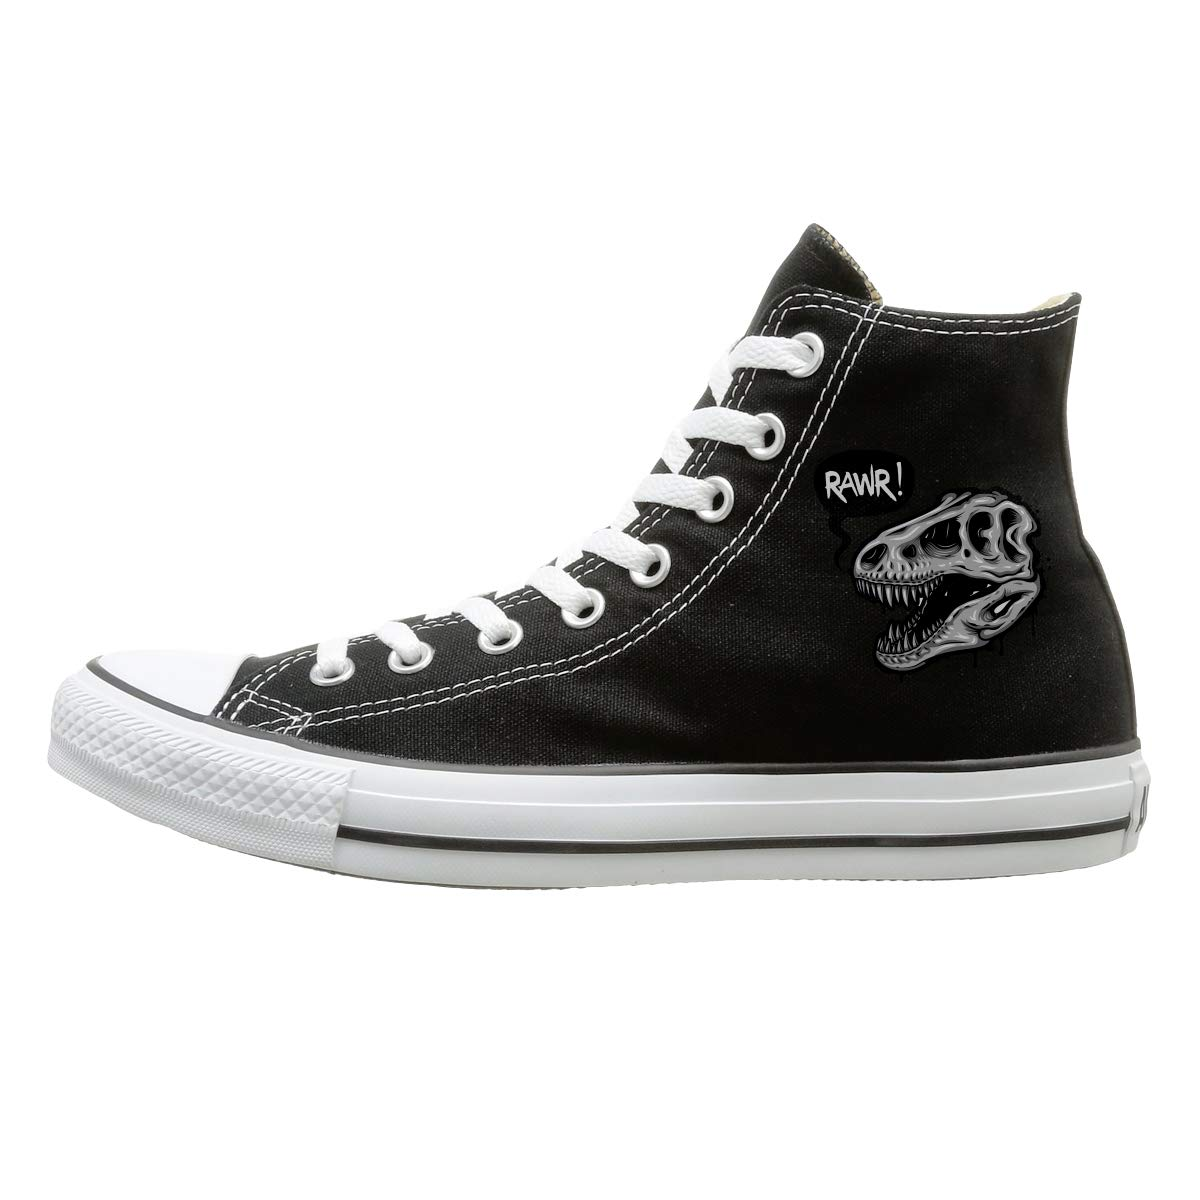 Tyrannosaur Rex Lace Up Canvas Shoes Man Woman High Top Stylish Sneakers Dinosaur Skull With Text Bubble